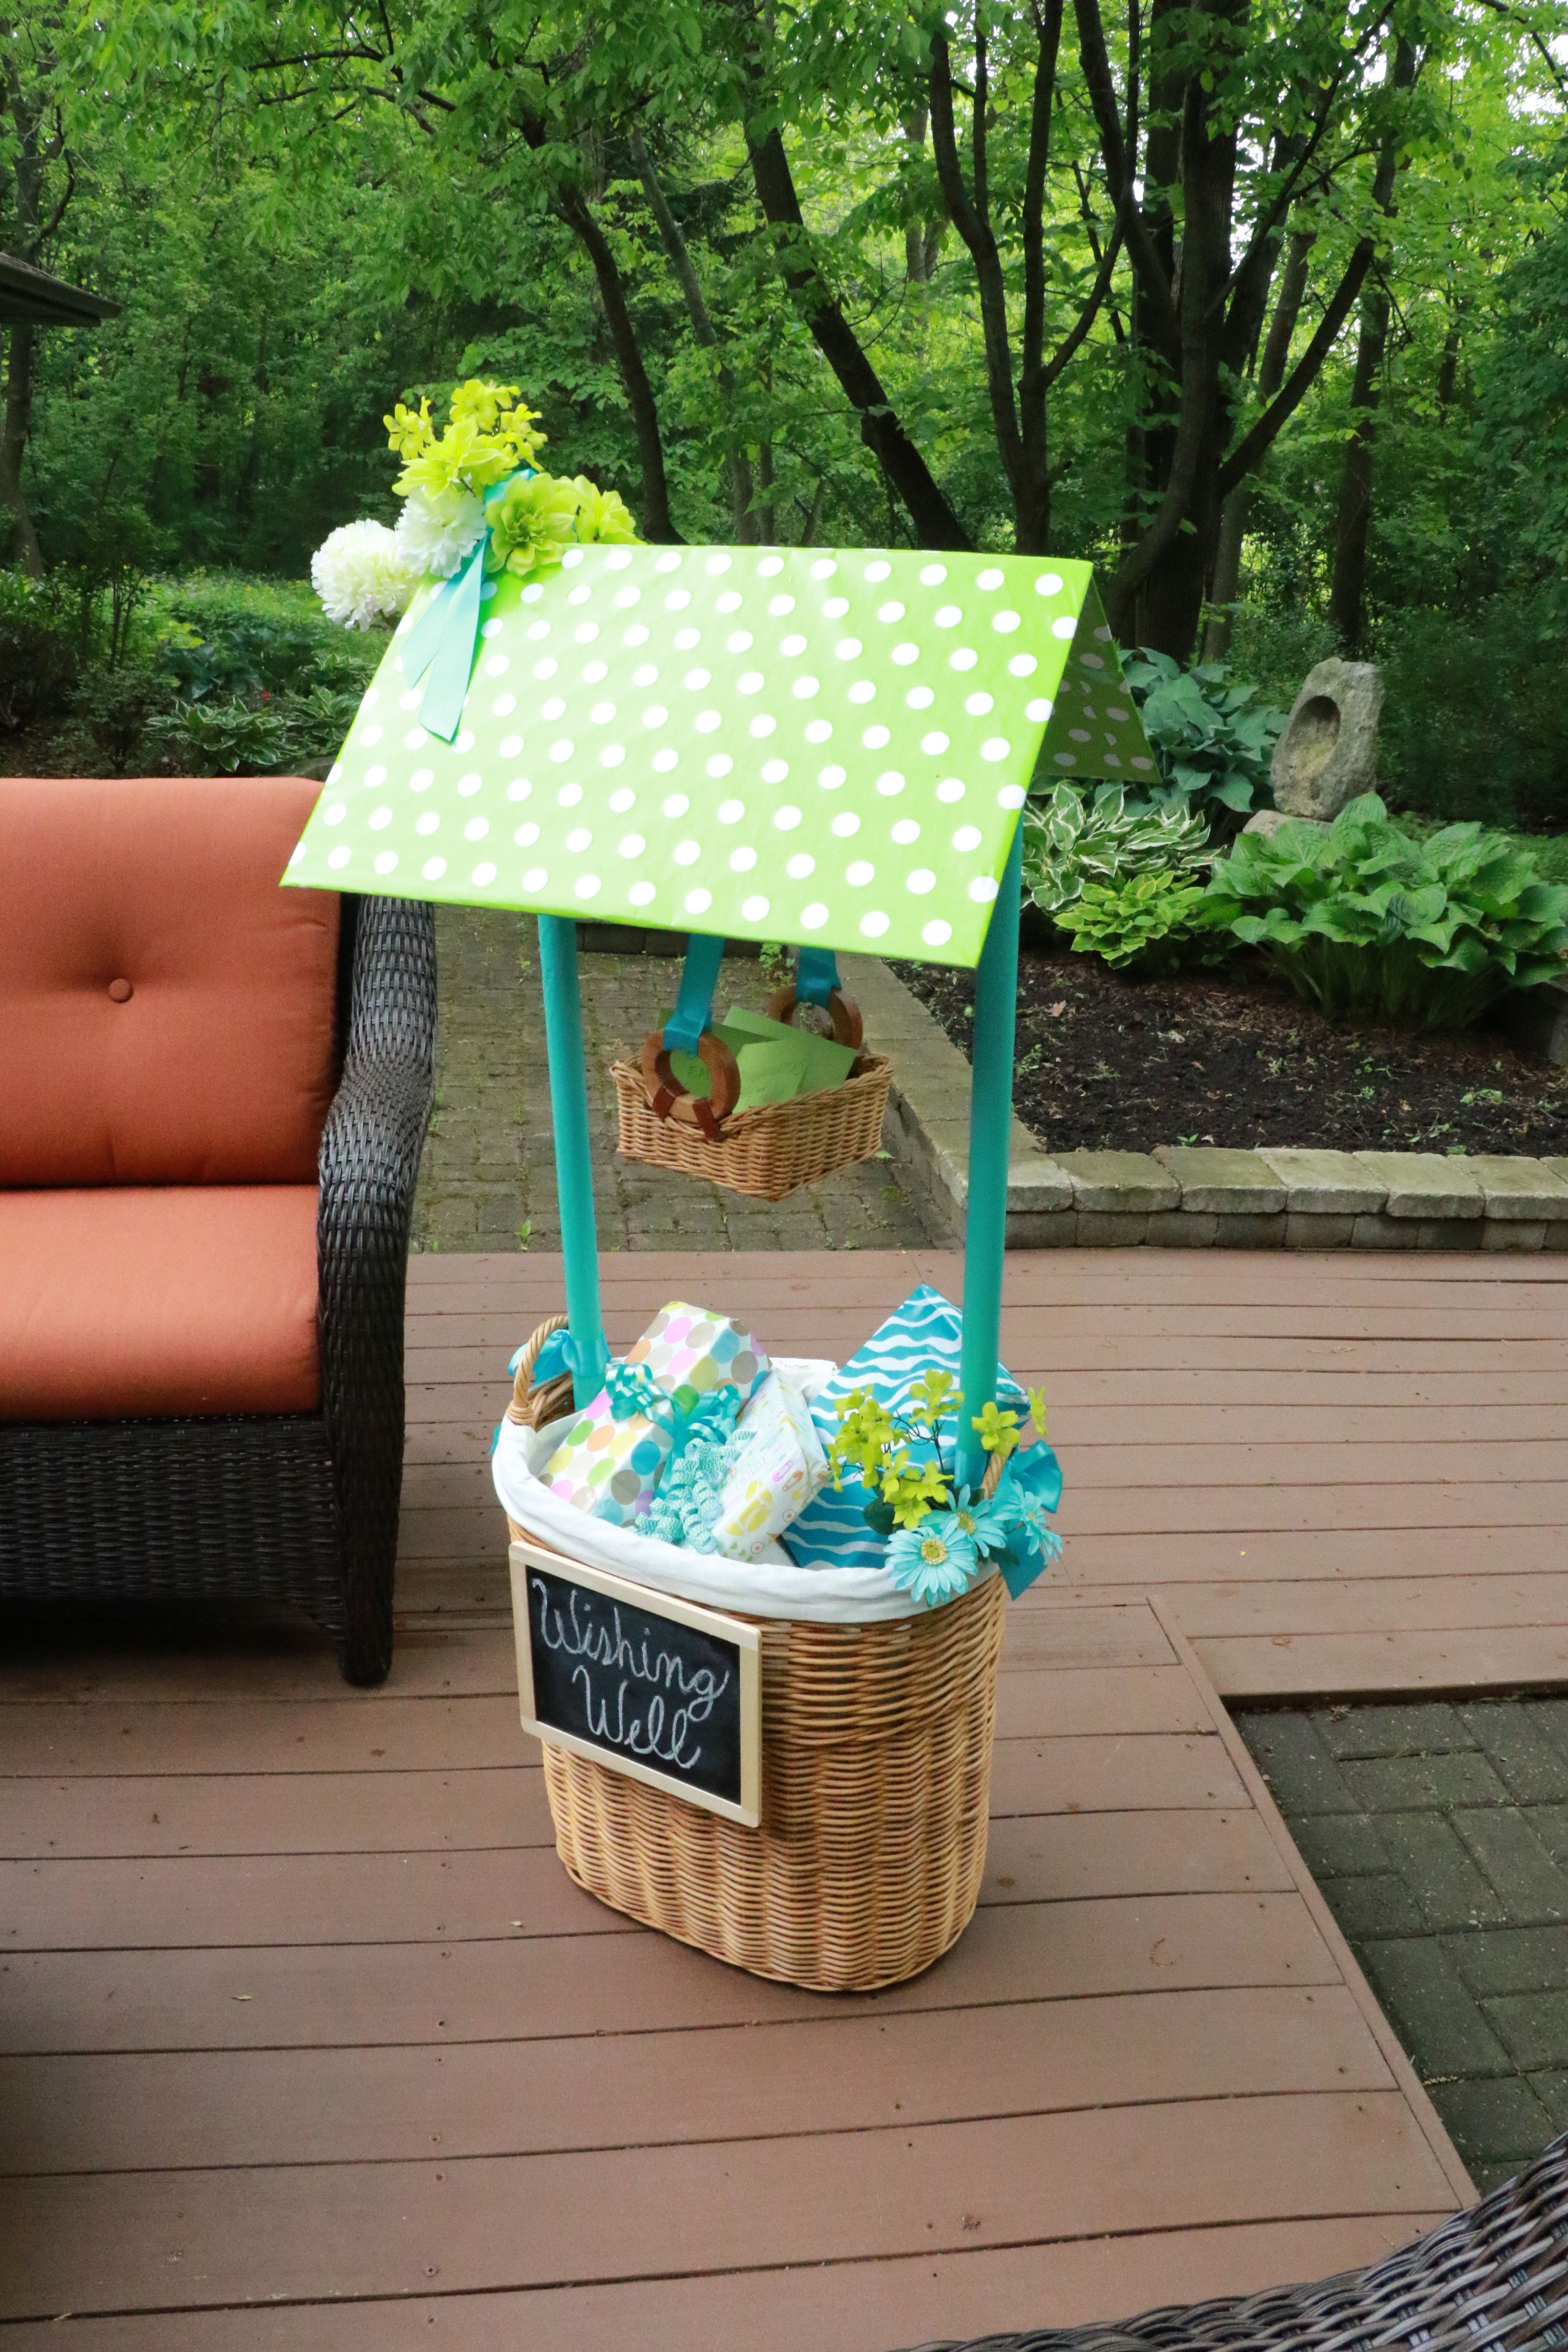 How To Make Your Own Beautiful Wishing Well Basket For A Bridal Or Baby Shower Wishing Well Baby Shower Bridal Shower Wishes Baby Girl Gift Baskets